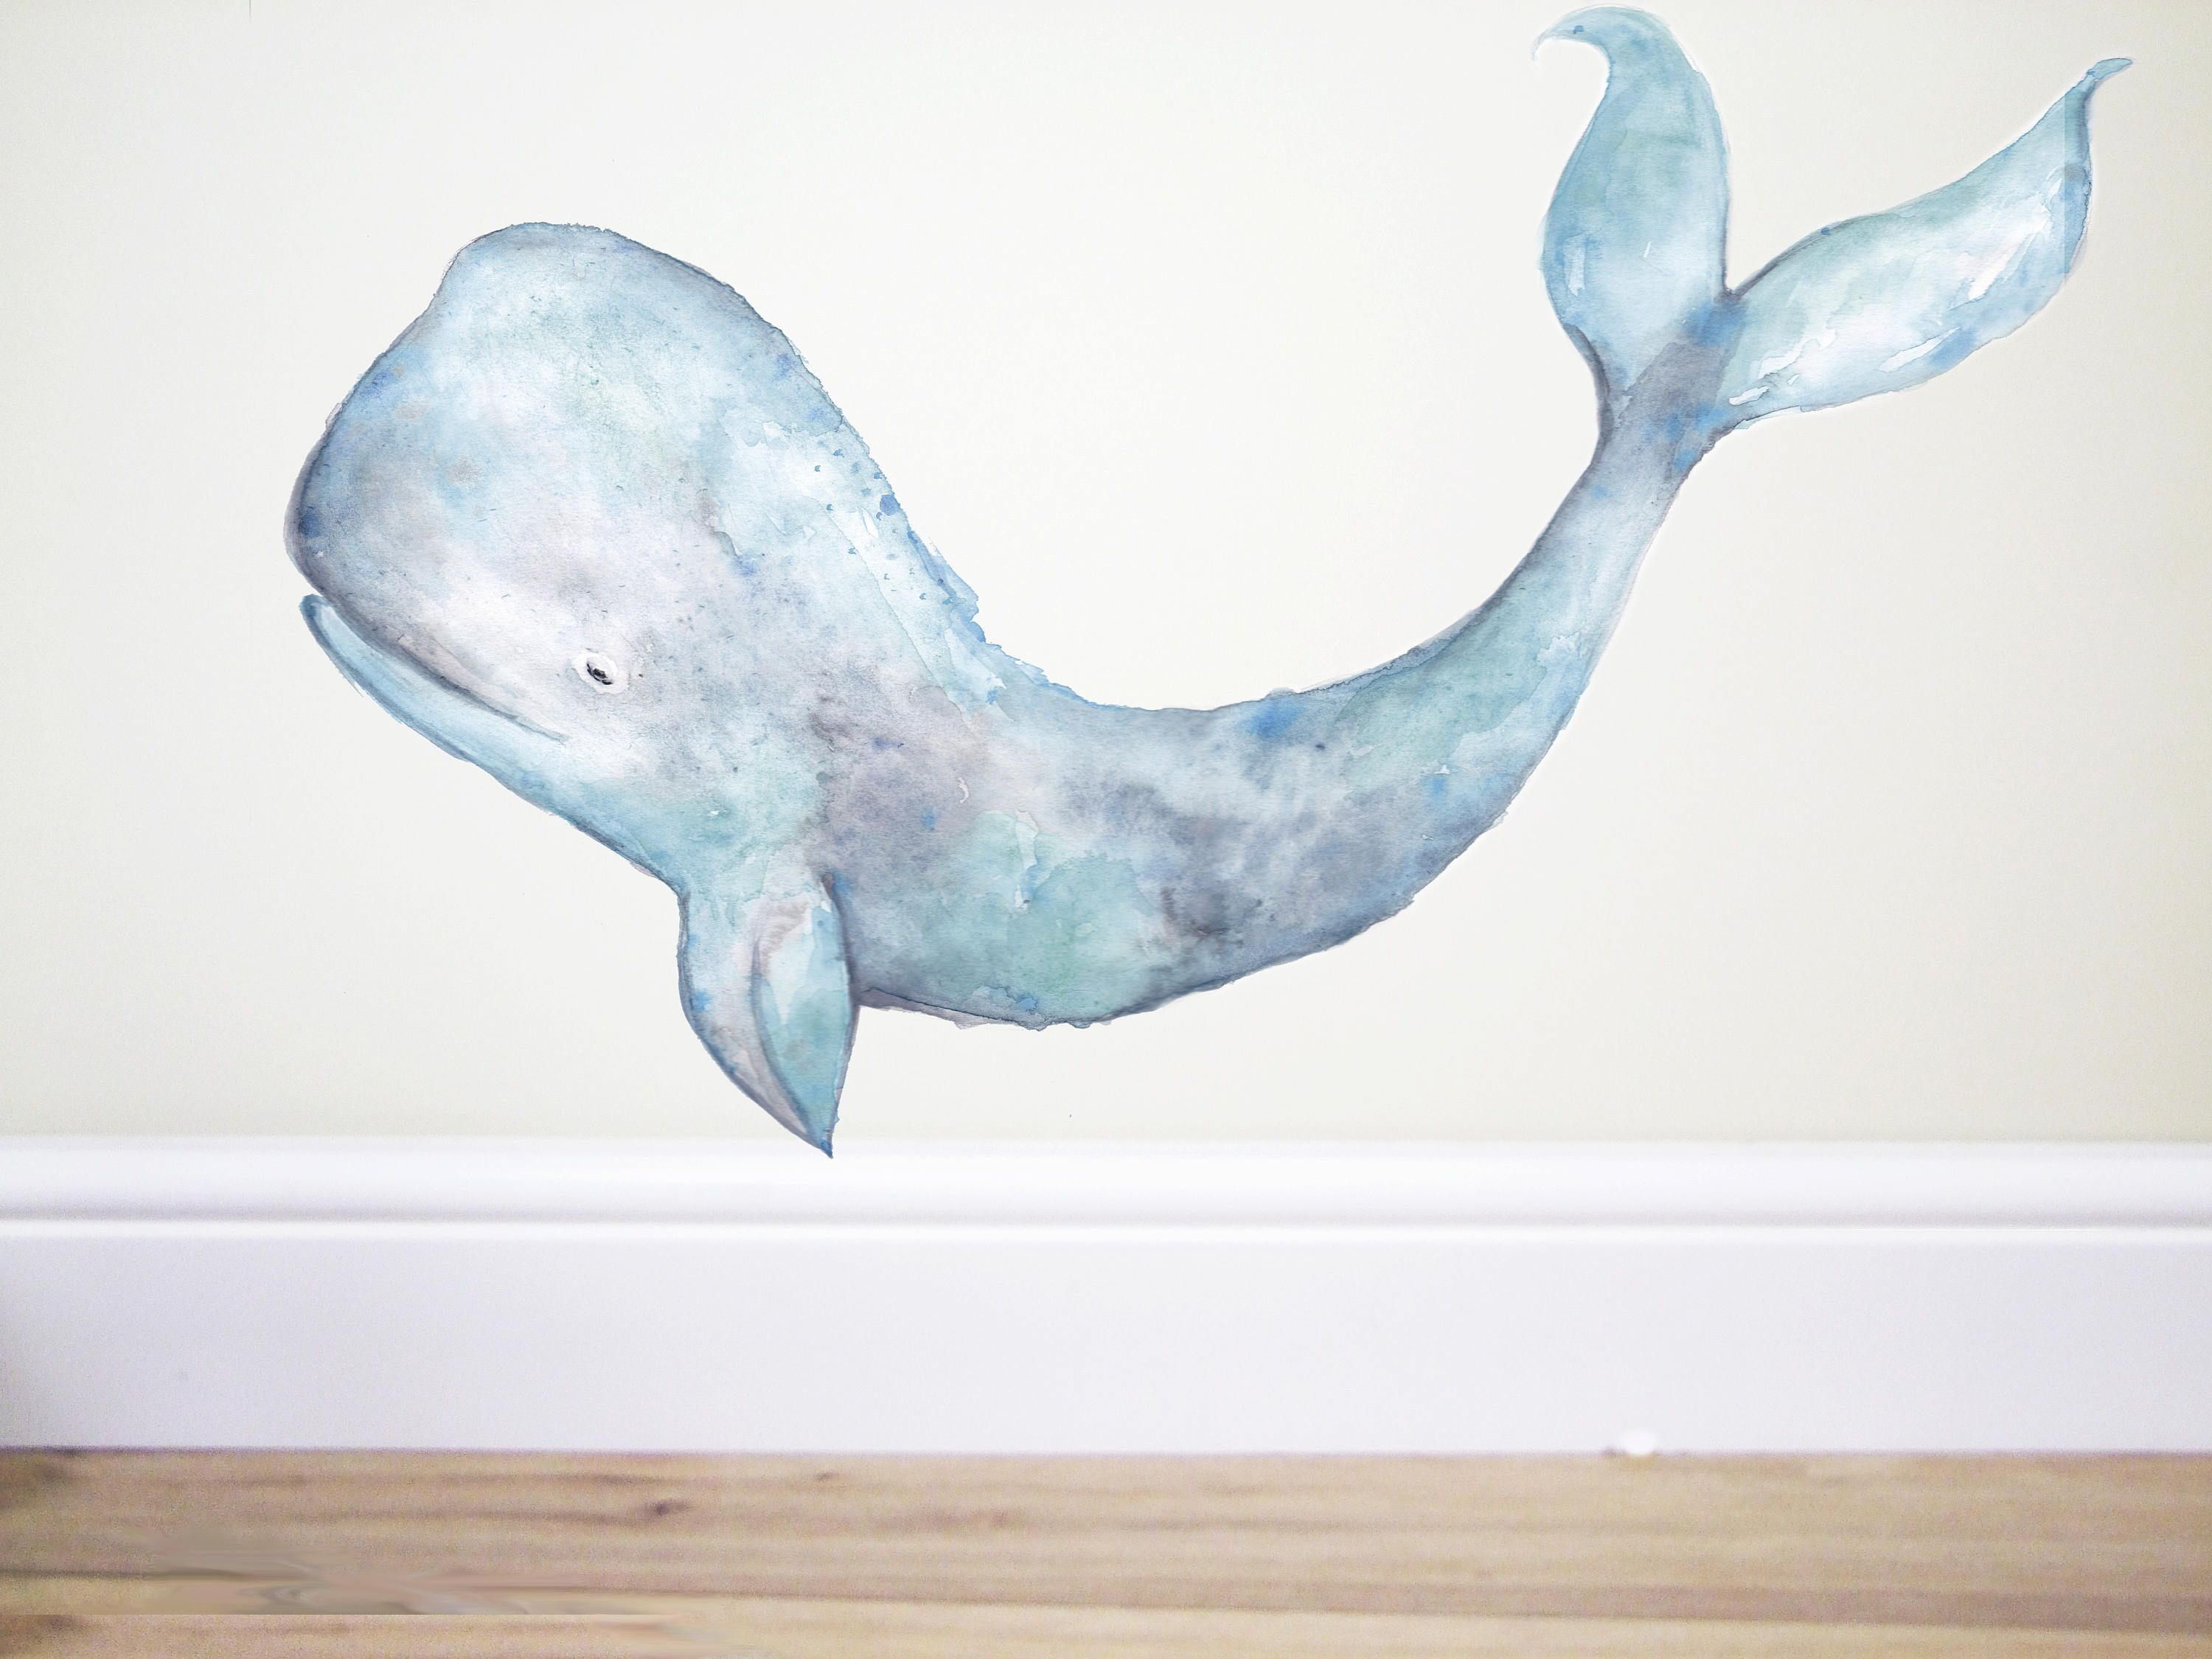 Humpback Whale Decal Whale Sticker Whale Wall Decal Under The Sea Decor Whale Art Nursery Wall Decal Mermaid Decal Mermaid Decor Art Whale Wall Decals Animal Wall Decals Whale Decal